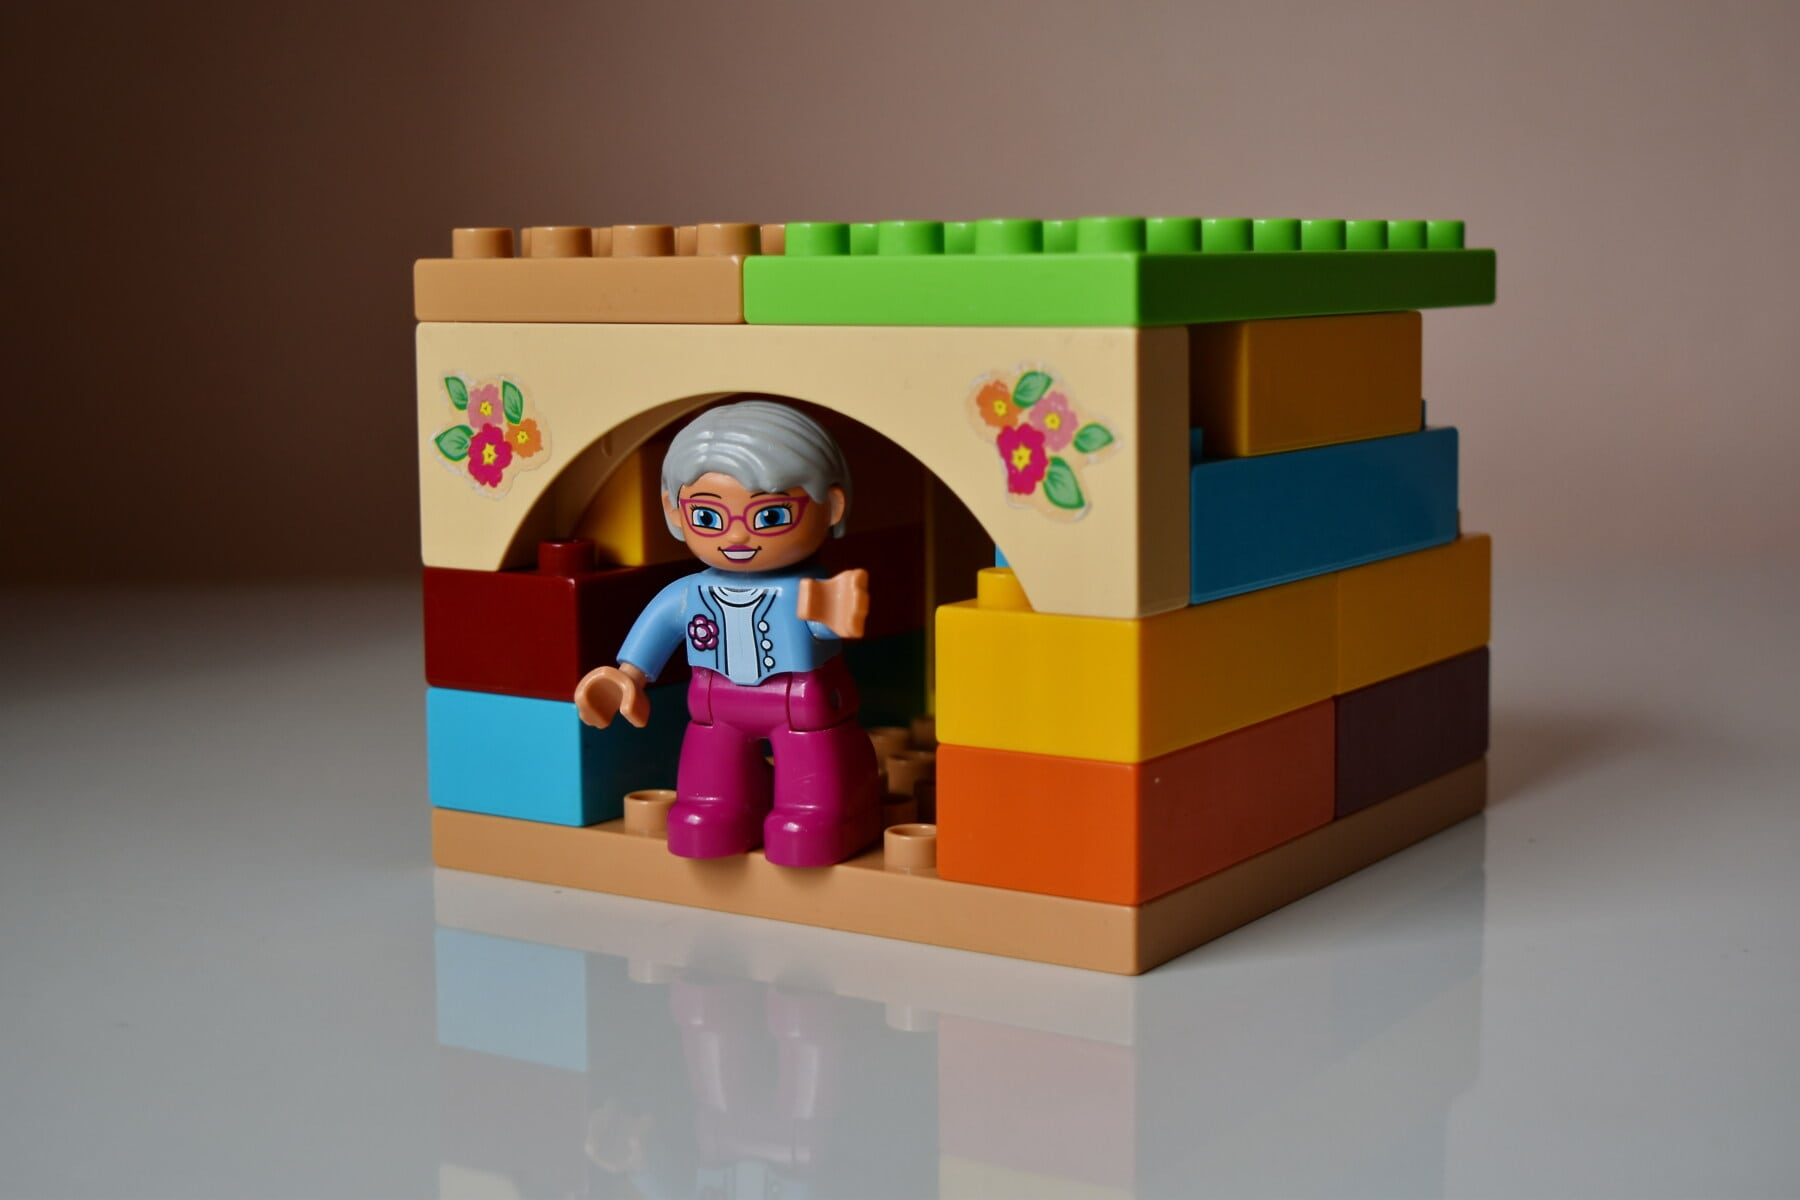 creativity, doll, colorful, toys, plastic, boxes, toy, fun, indoors, box